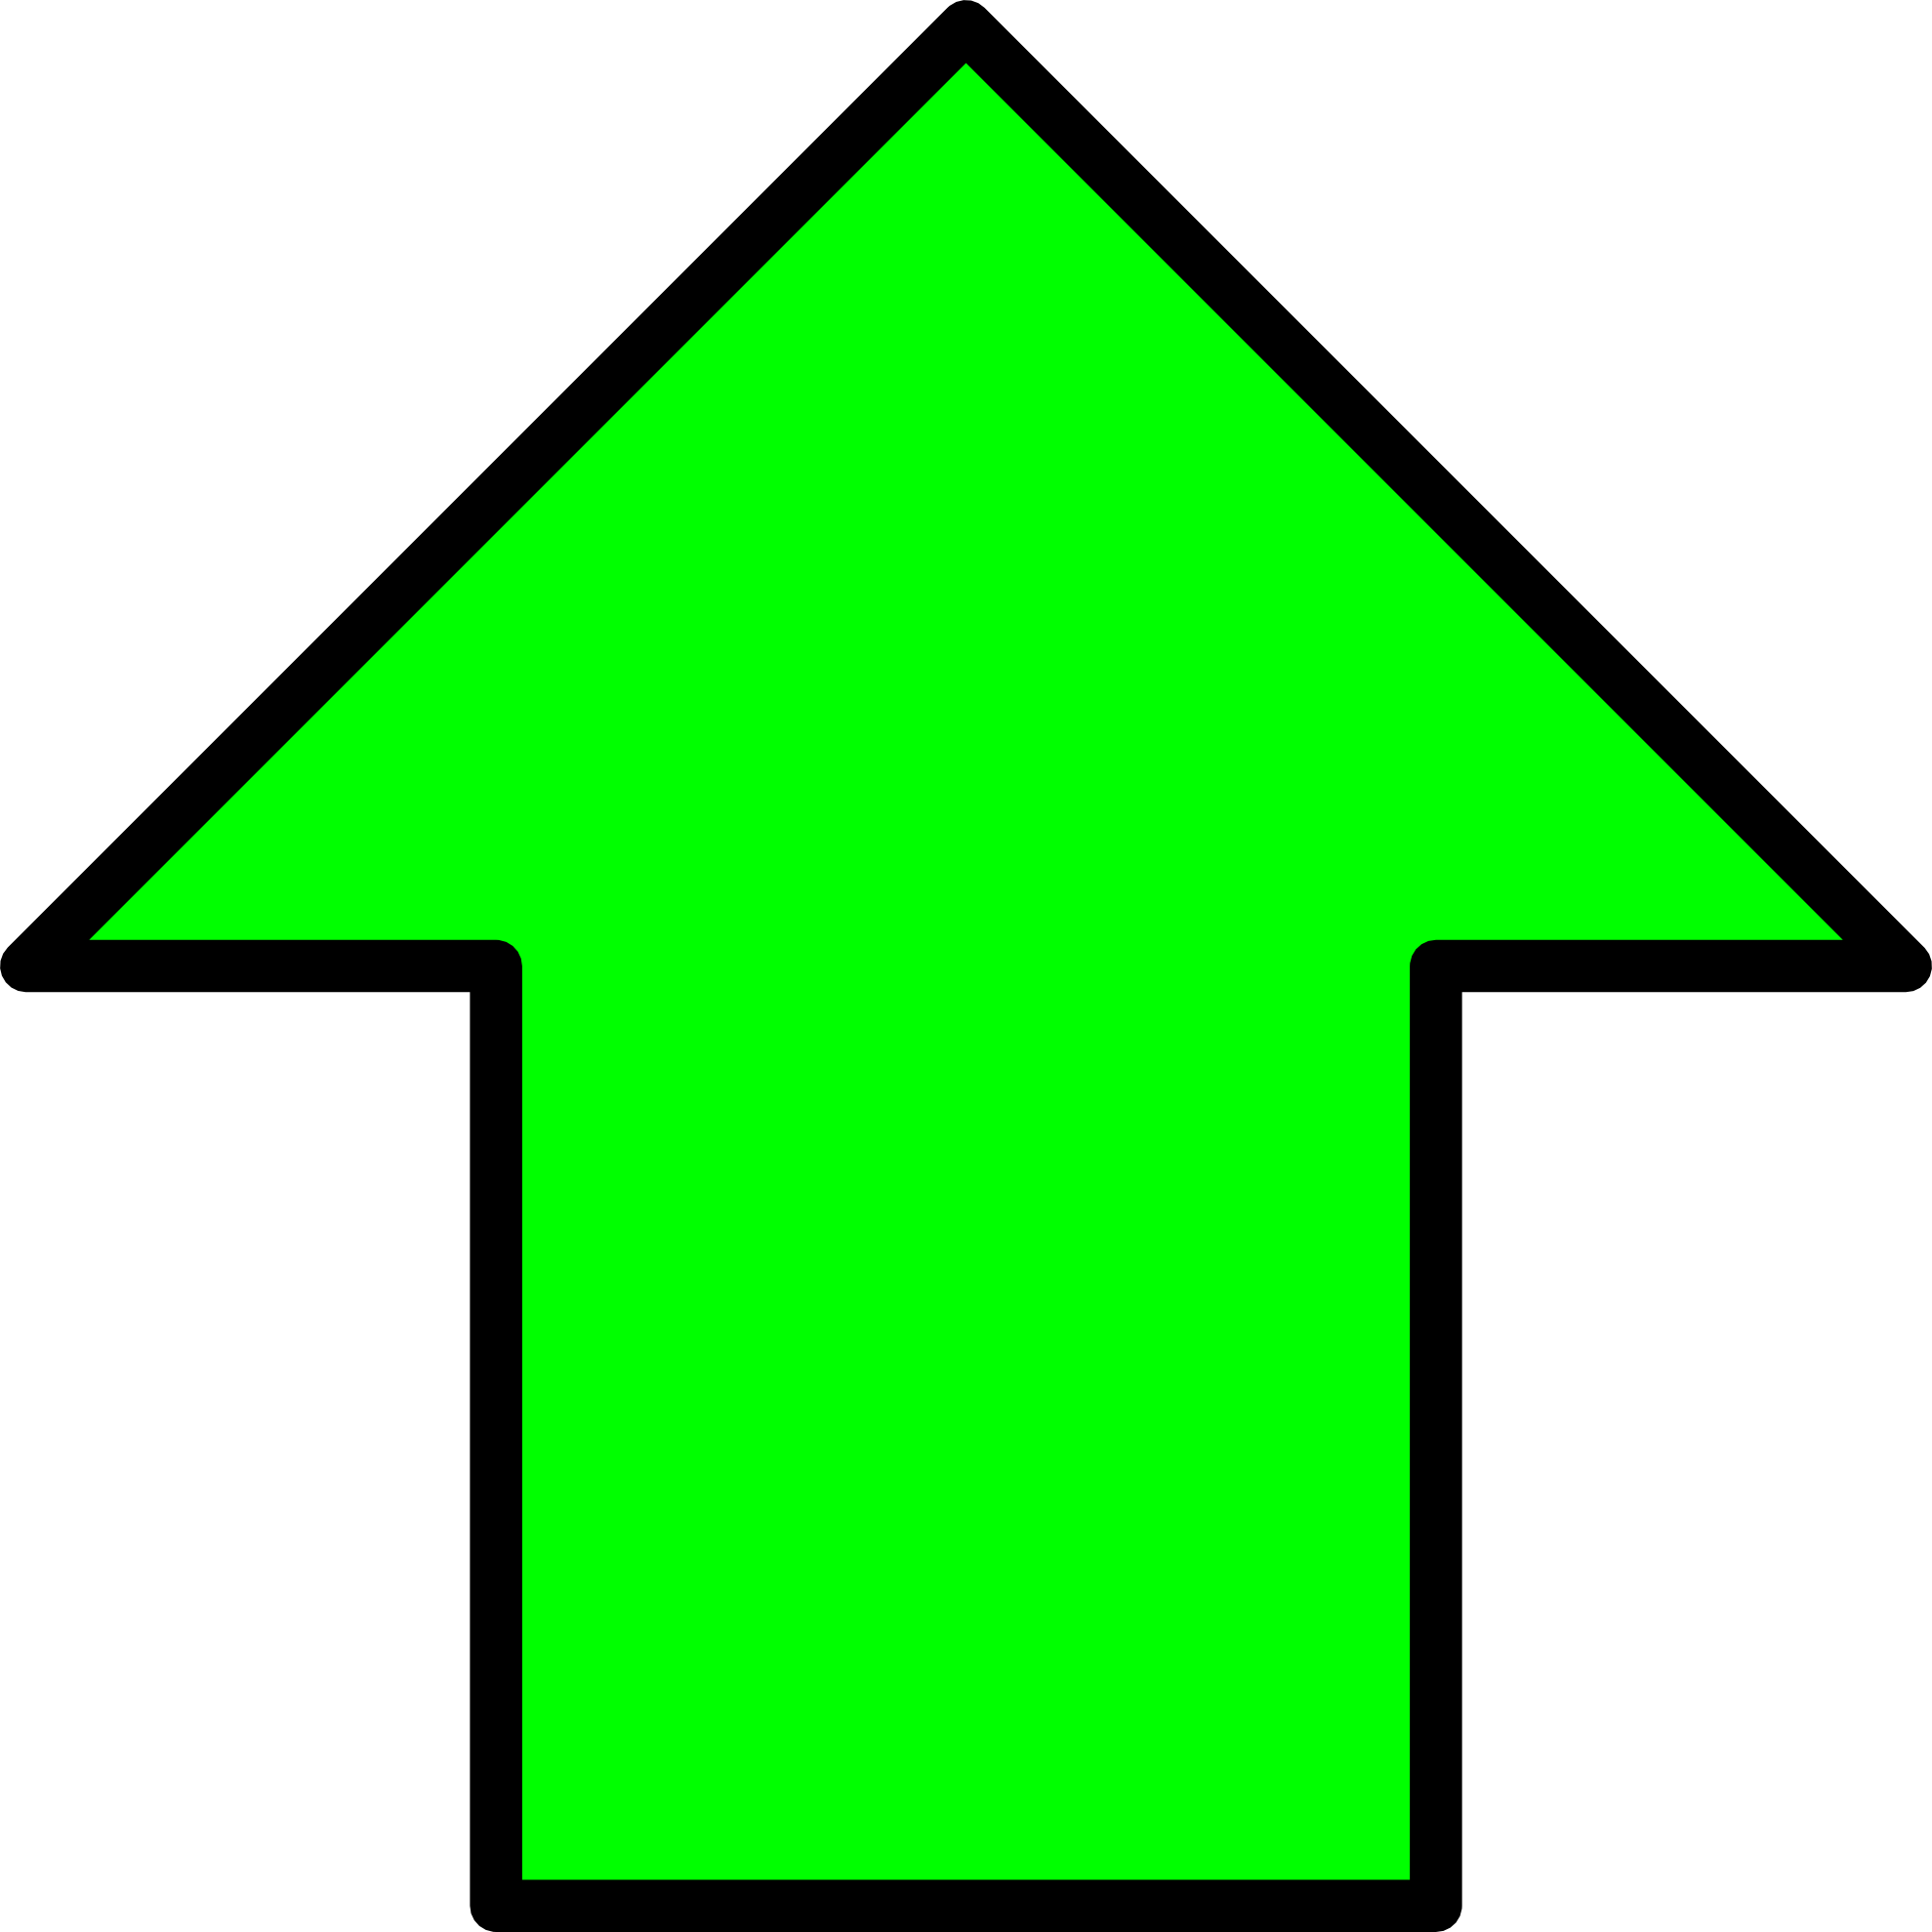 Green Up Arrow Png image #27164